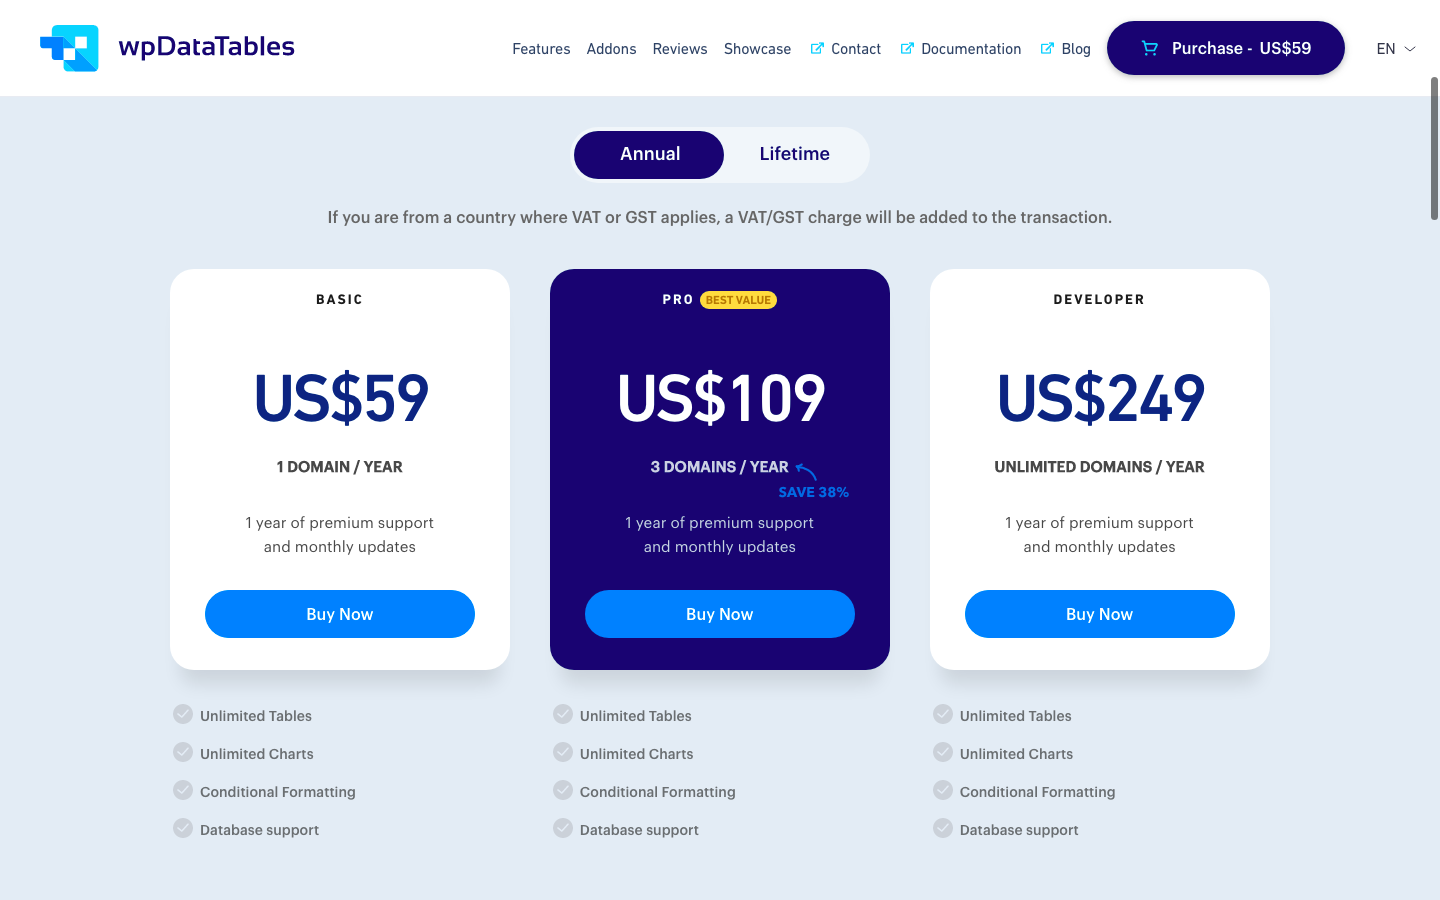 wpDataTables pricing plans